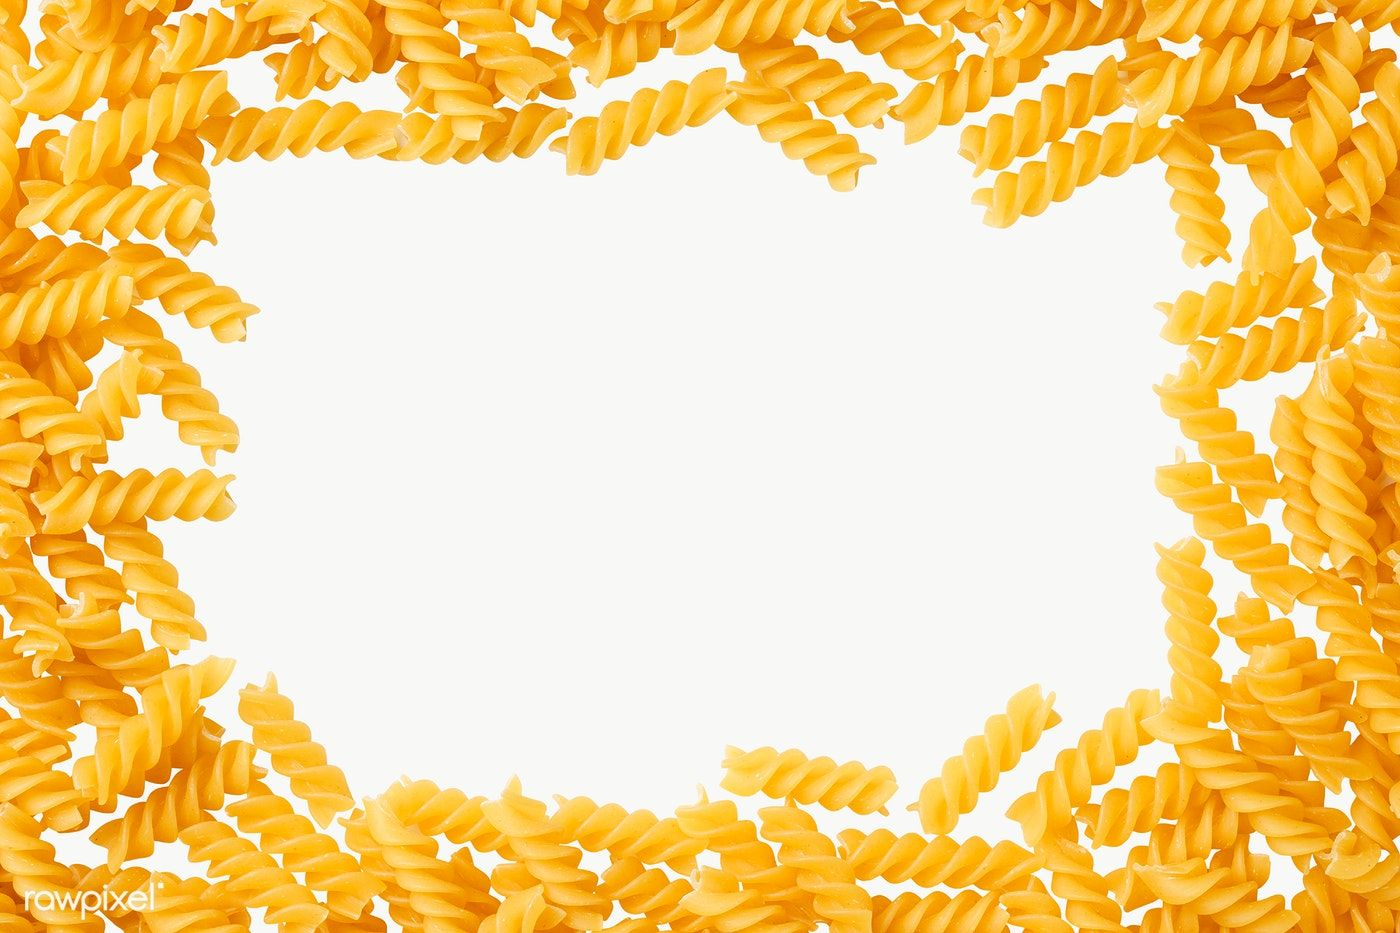 Uncooked Pasta Frame Transparent Png Free Image By Rawpixel Com Karolina Kaboompics Pasta Pappardelle Pasta Spaghetti Bolognese Recipe